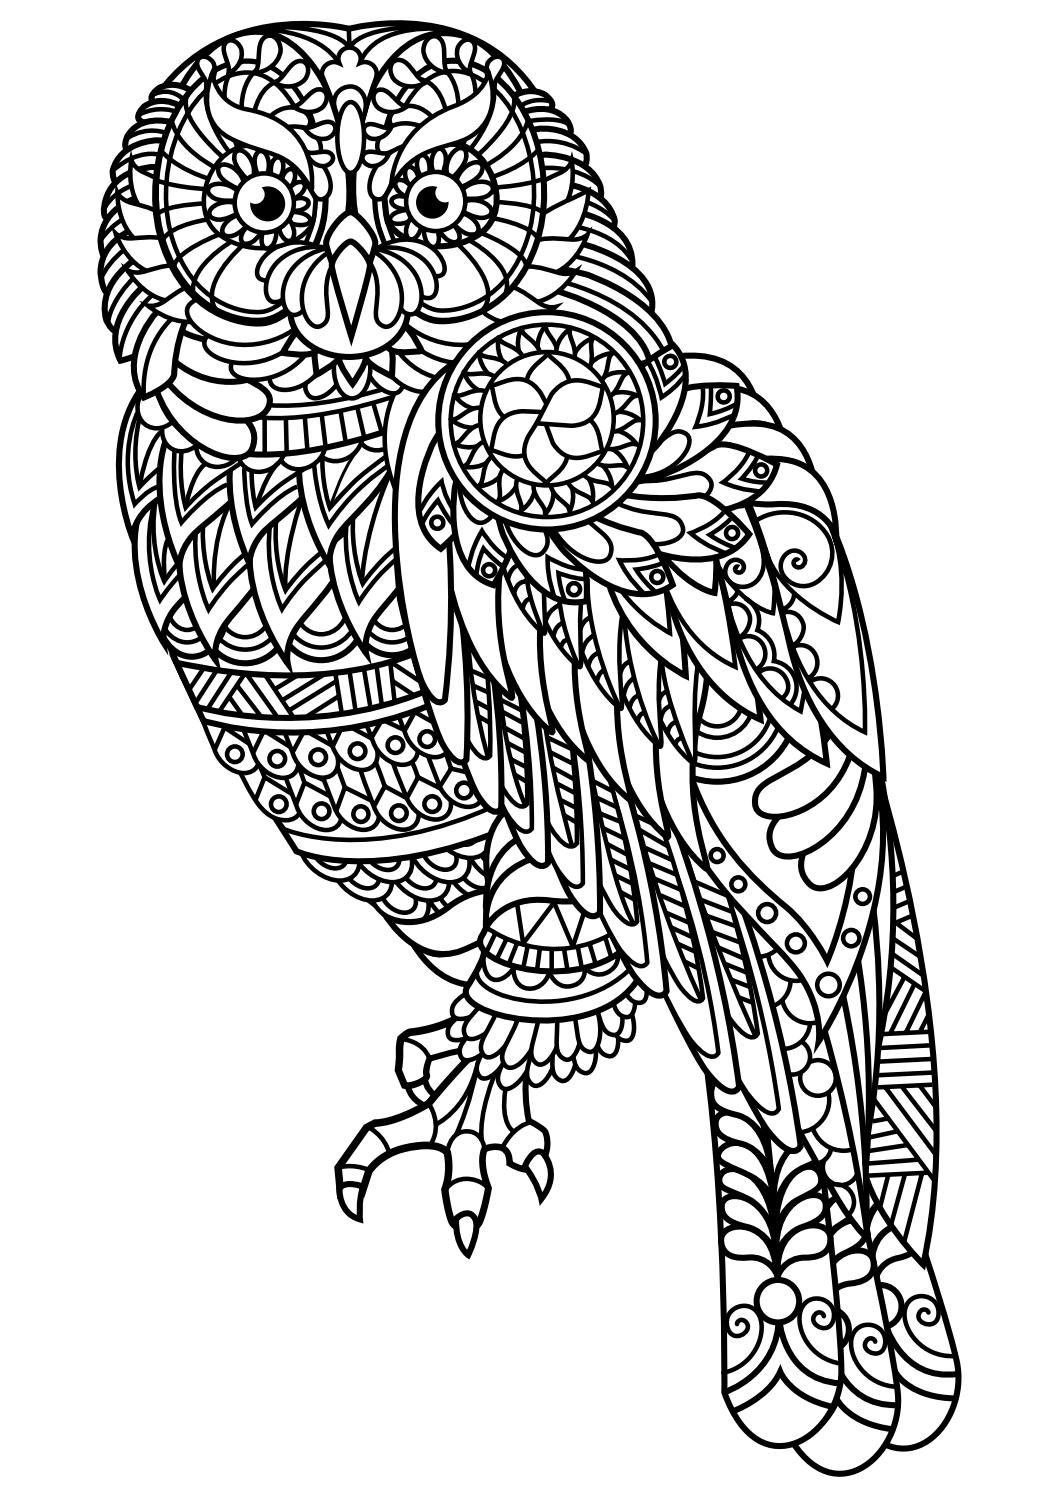 Fine Tattoo Coloring Book Tall Michaels Coloring Books Square Mystical Mandala Coloring Book Mickey Mouse Coloring Book Old Fairy Coloring Book BlackBlack Panther Coloring Book Animal Coloring Pages Pdf | Adult Coloring, Dog Cat And Coloring Books